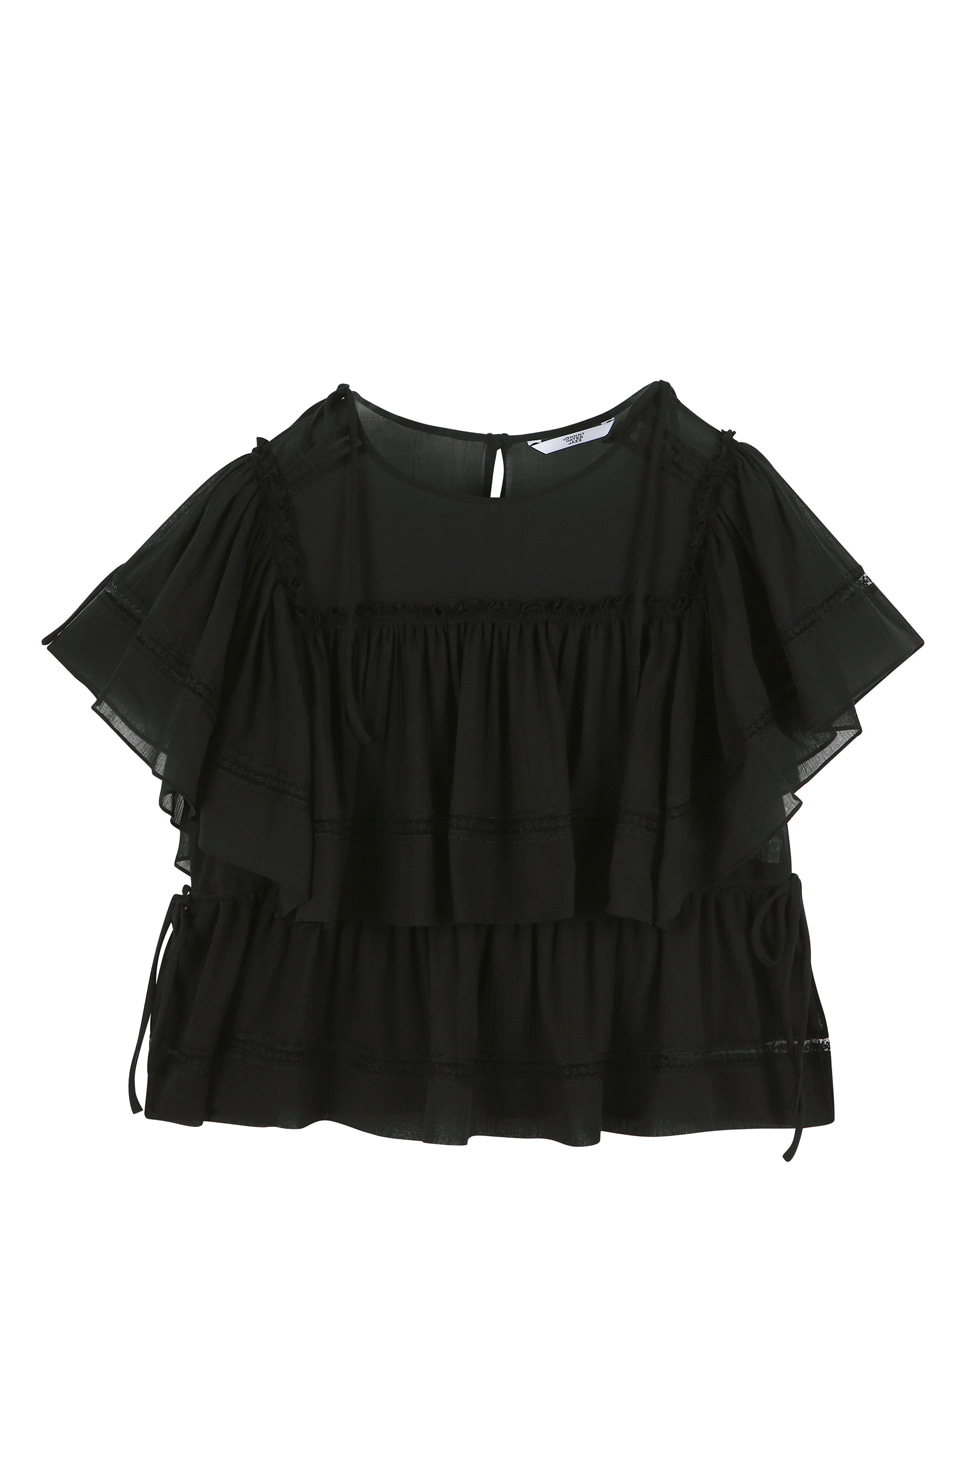 COTTON LACE BLOUSE - BLACK